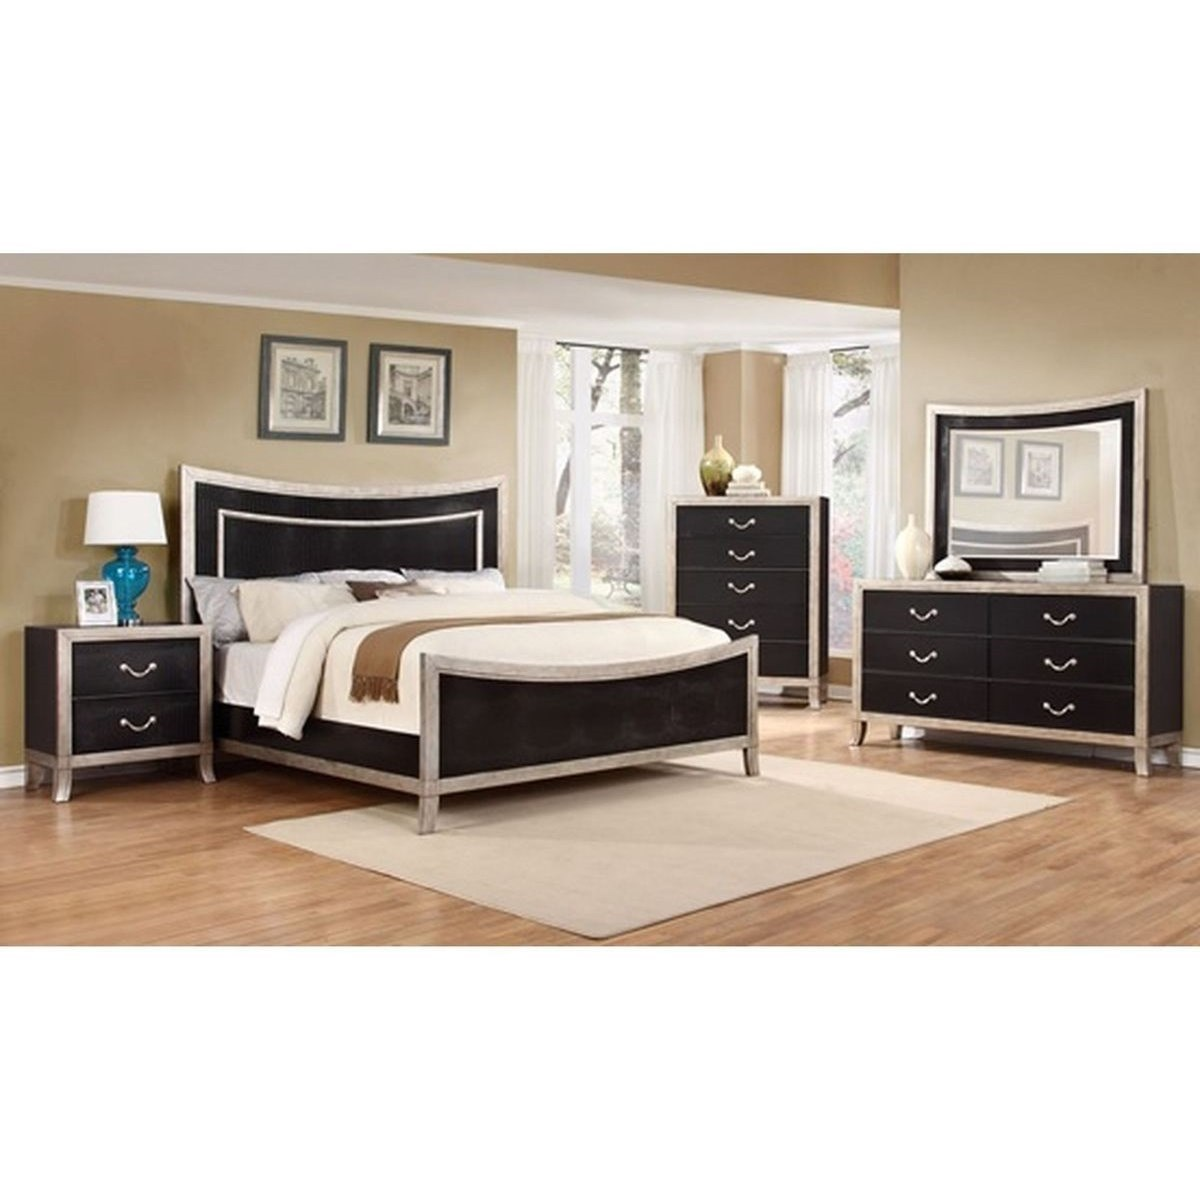 Lifestyle Natalia 5PC  Queen Bedroom Set - Item Number: 6199A Q Bedroom Group